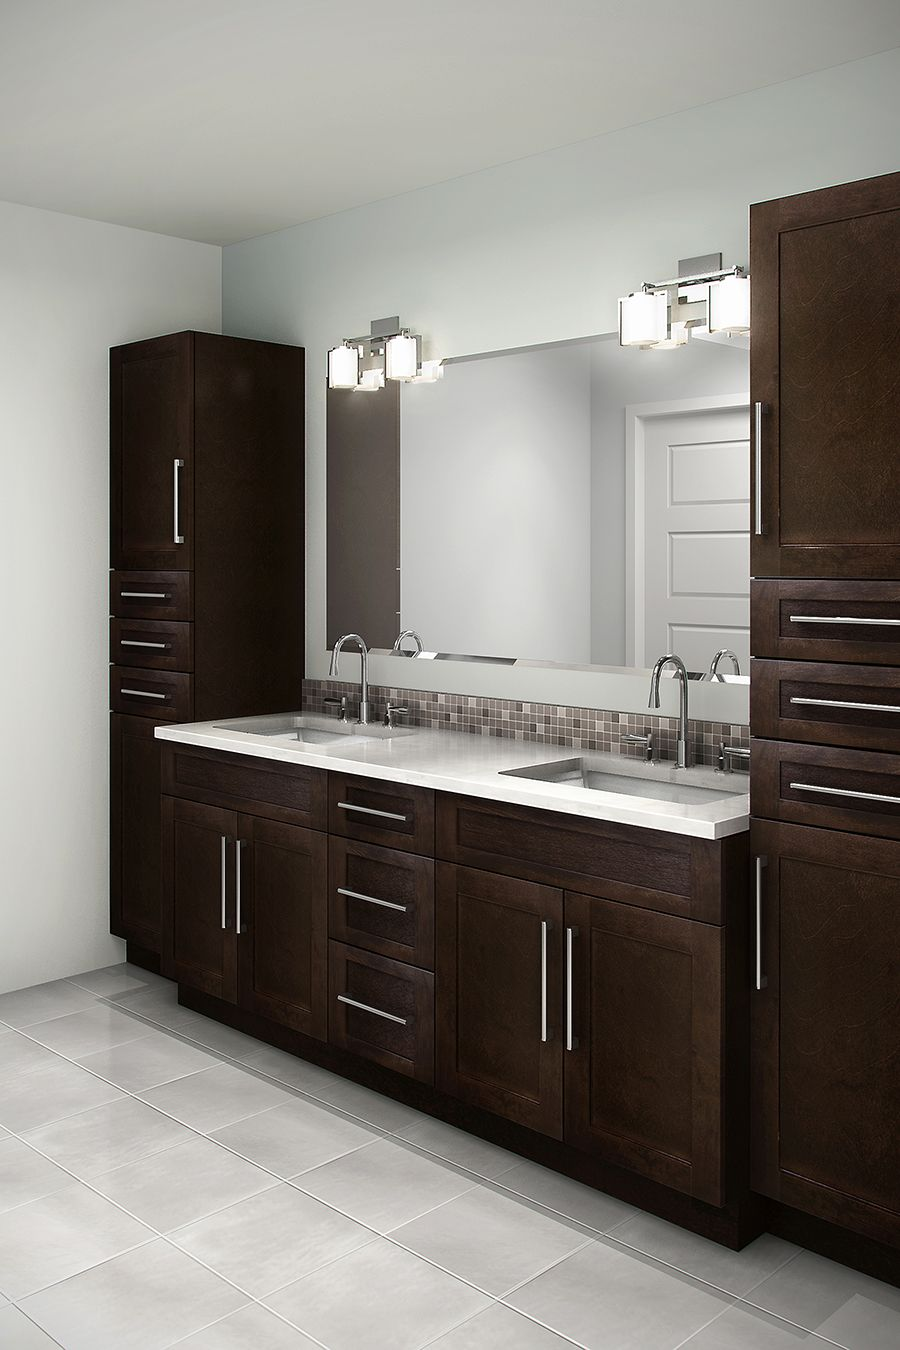 cyprus chocolate pear a birch shaker door stained in a beautiful rh pinterest com